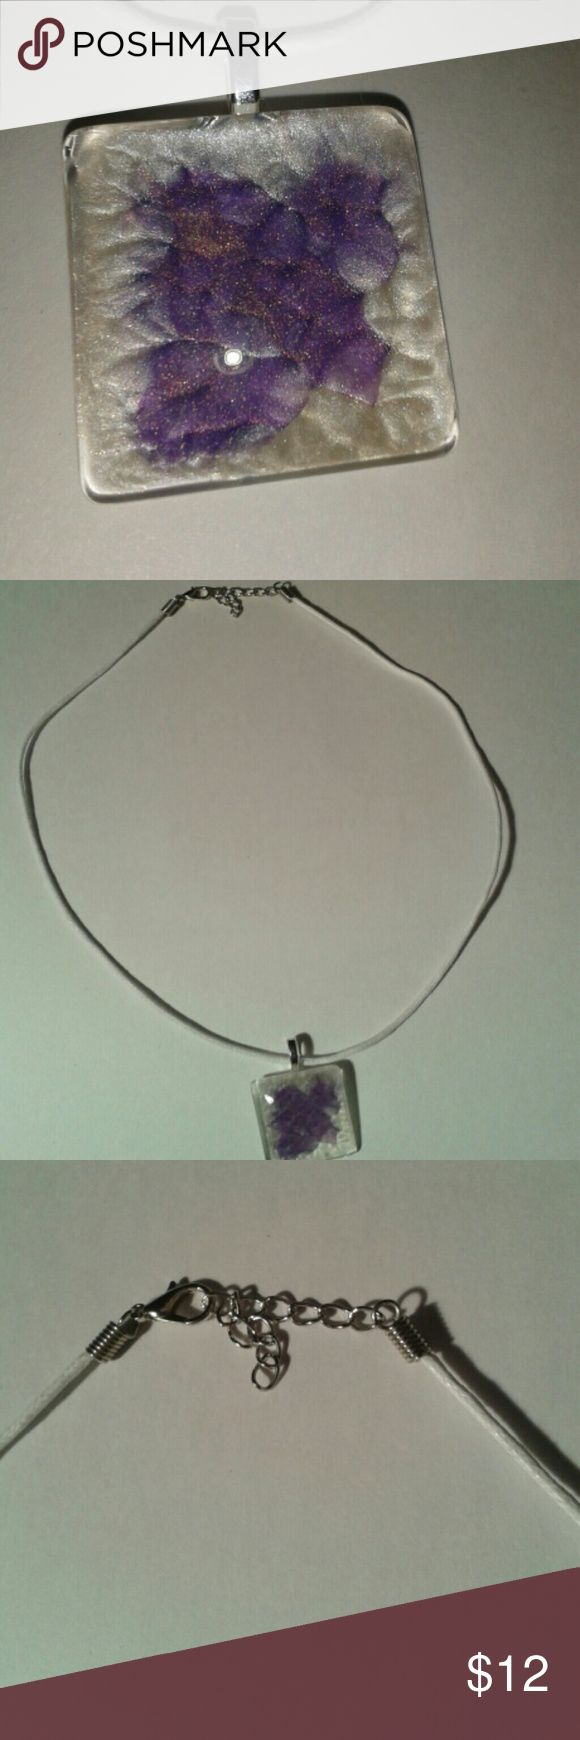 WHITE & PURPLE NECKLACE Handcrafted, adjustable necklace, white cord, glass square shape. Prisme Fantasy paint colors are eggshell white and pearl violins. Price is firm. Handcrafted by Lora May Jewelry Necklaces